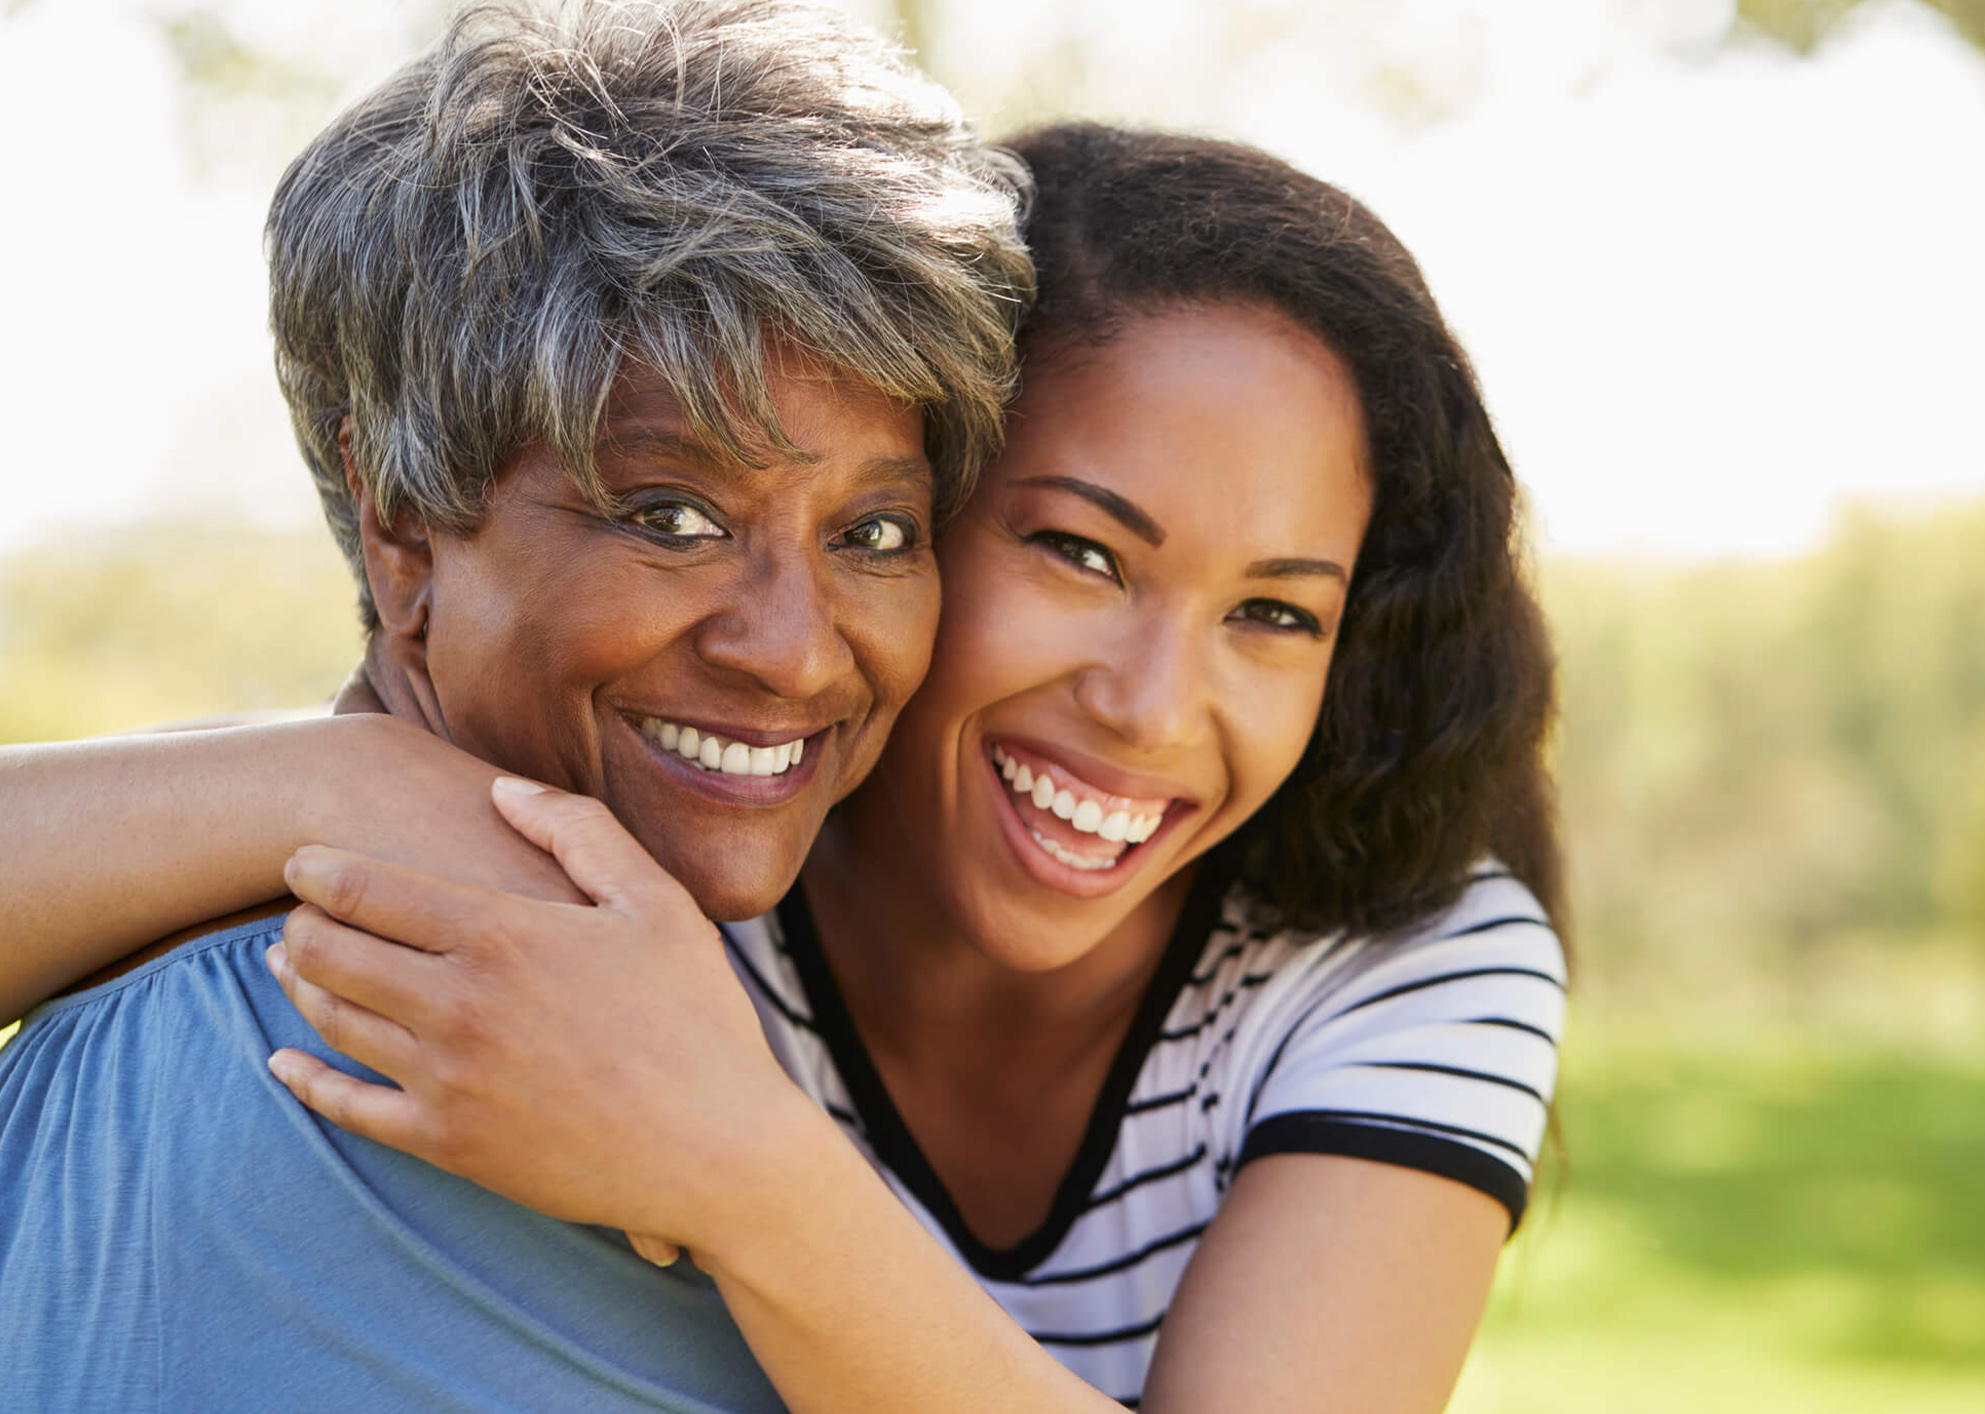 young african american adult hugging and smiling with an older african american lady with grey hair